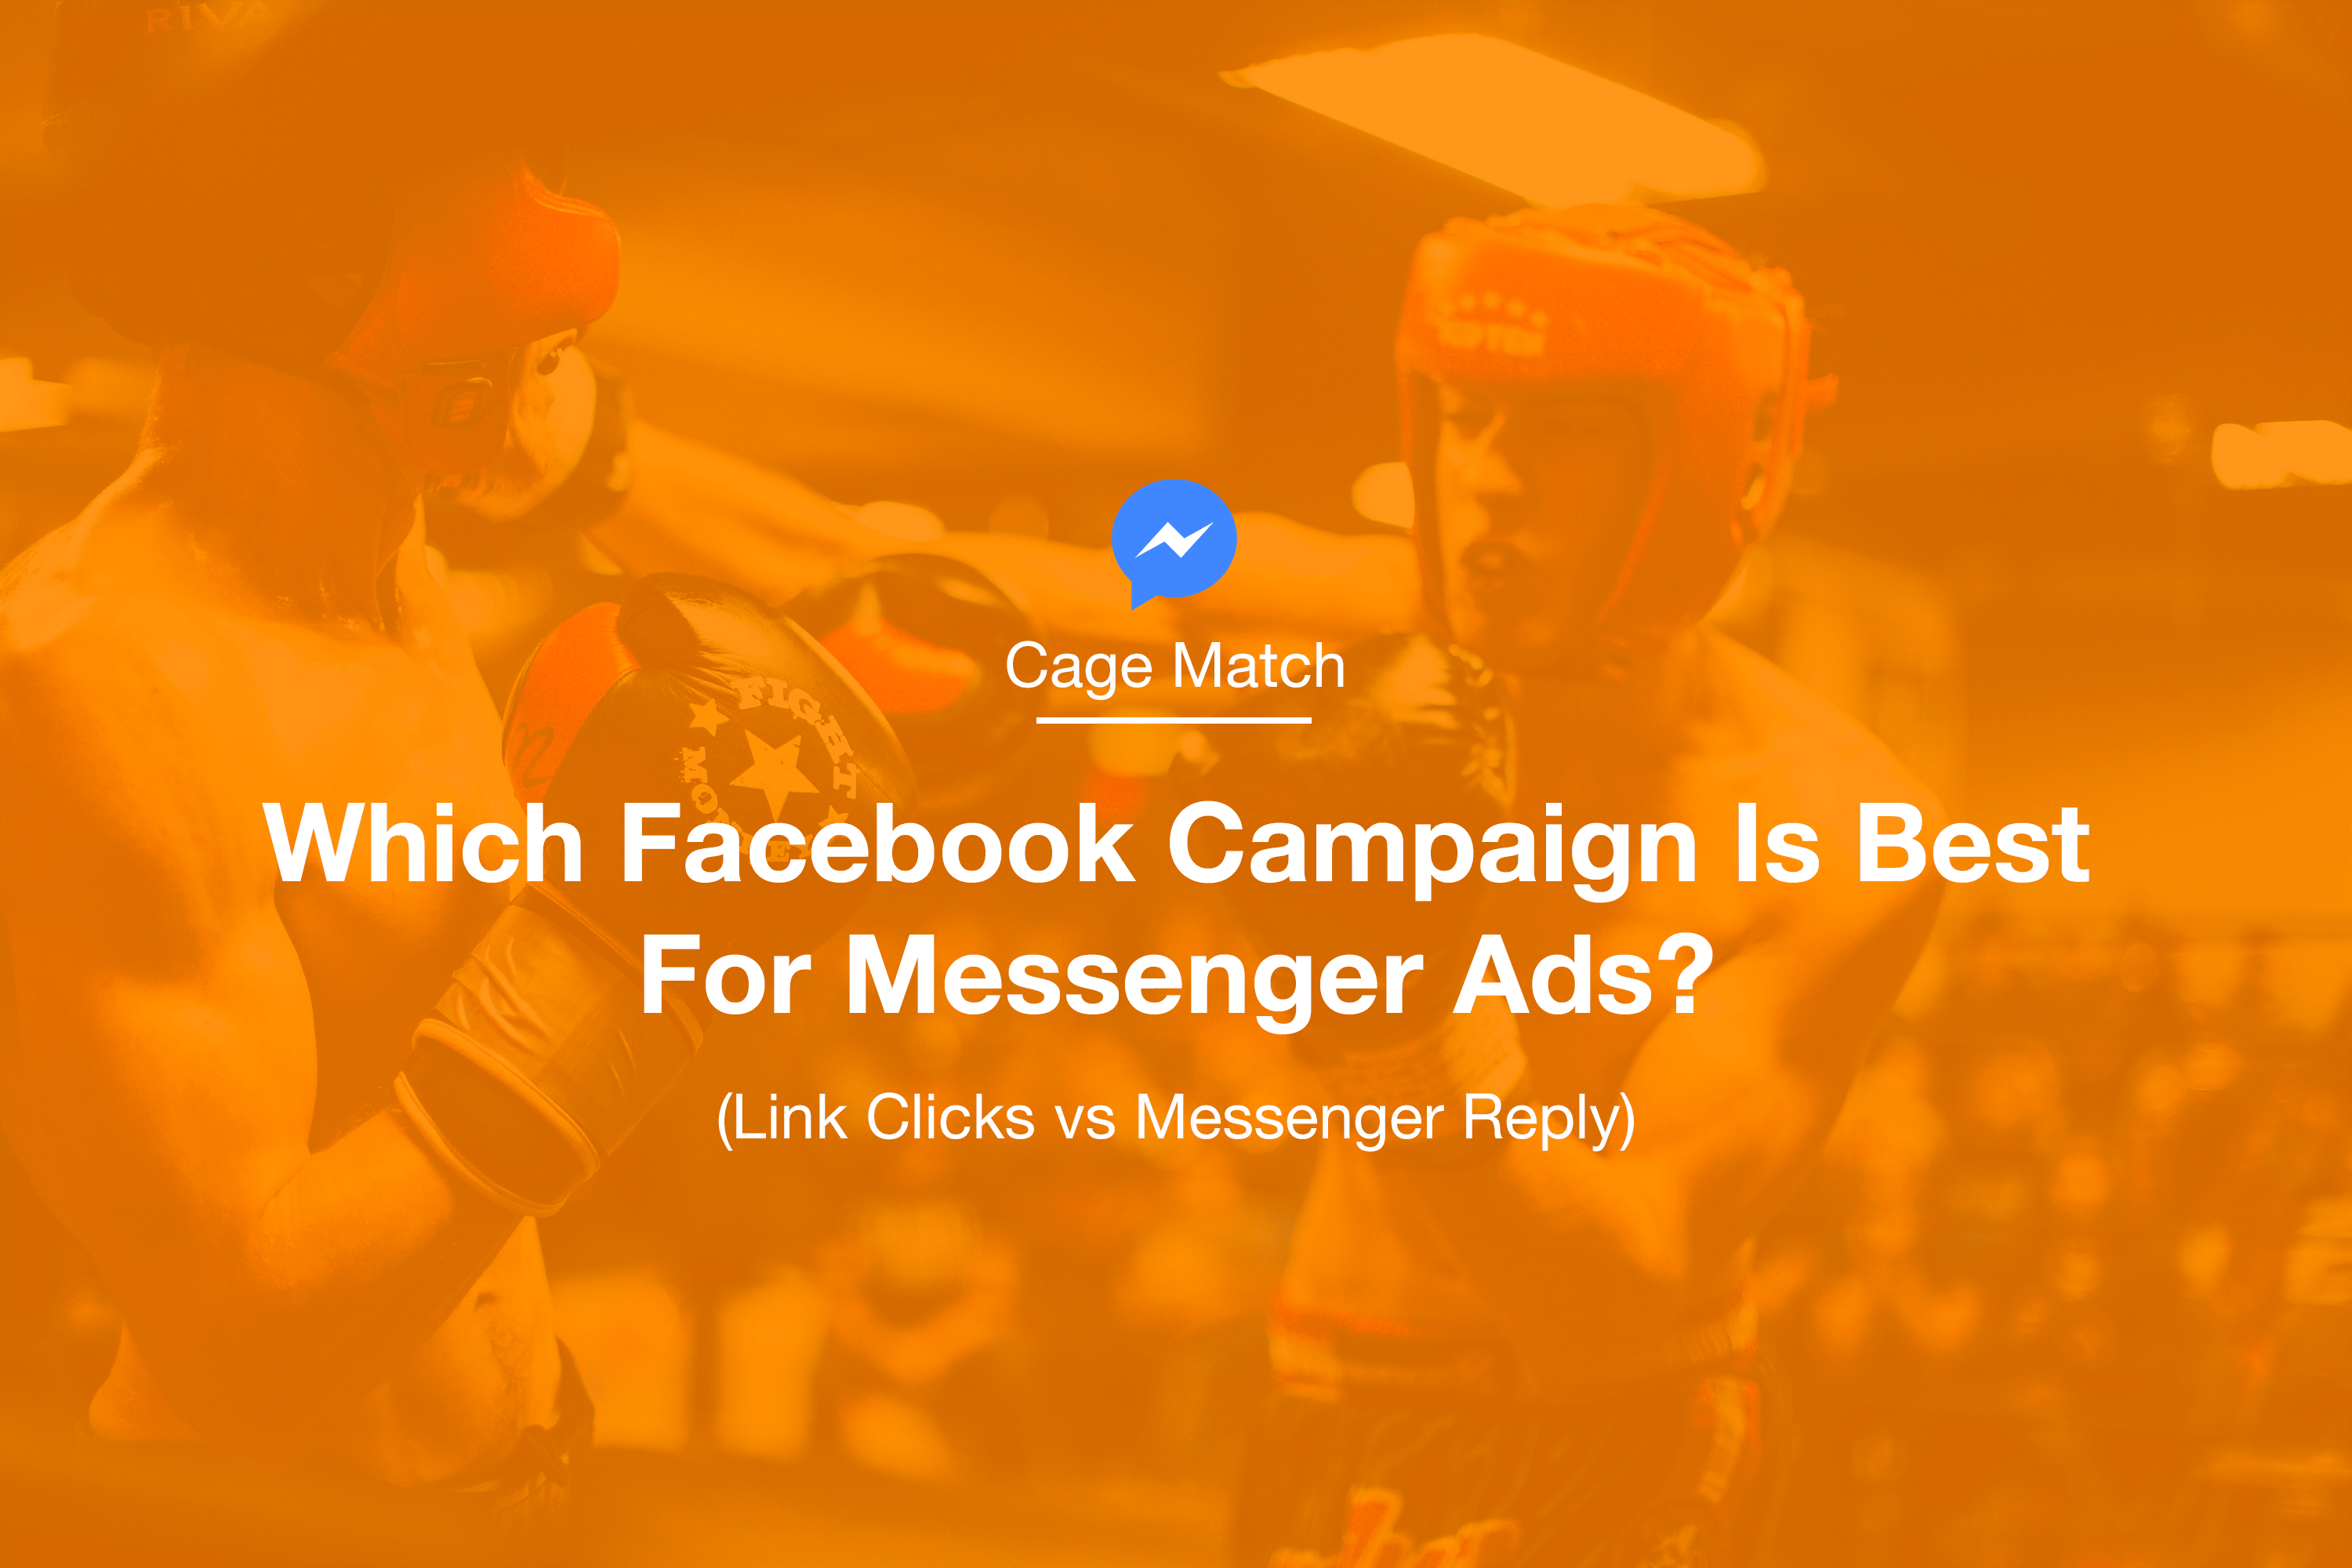 Which Facebook Campaign Is Best For Messenger Ads?